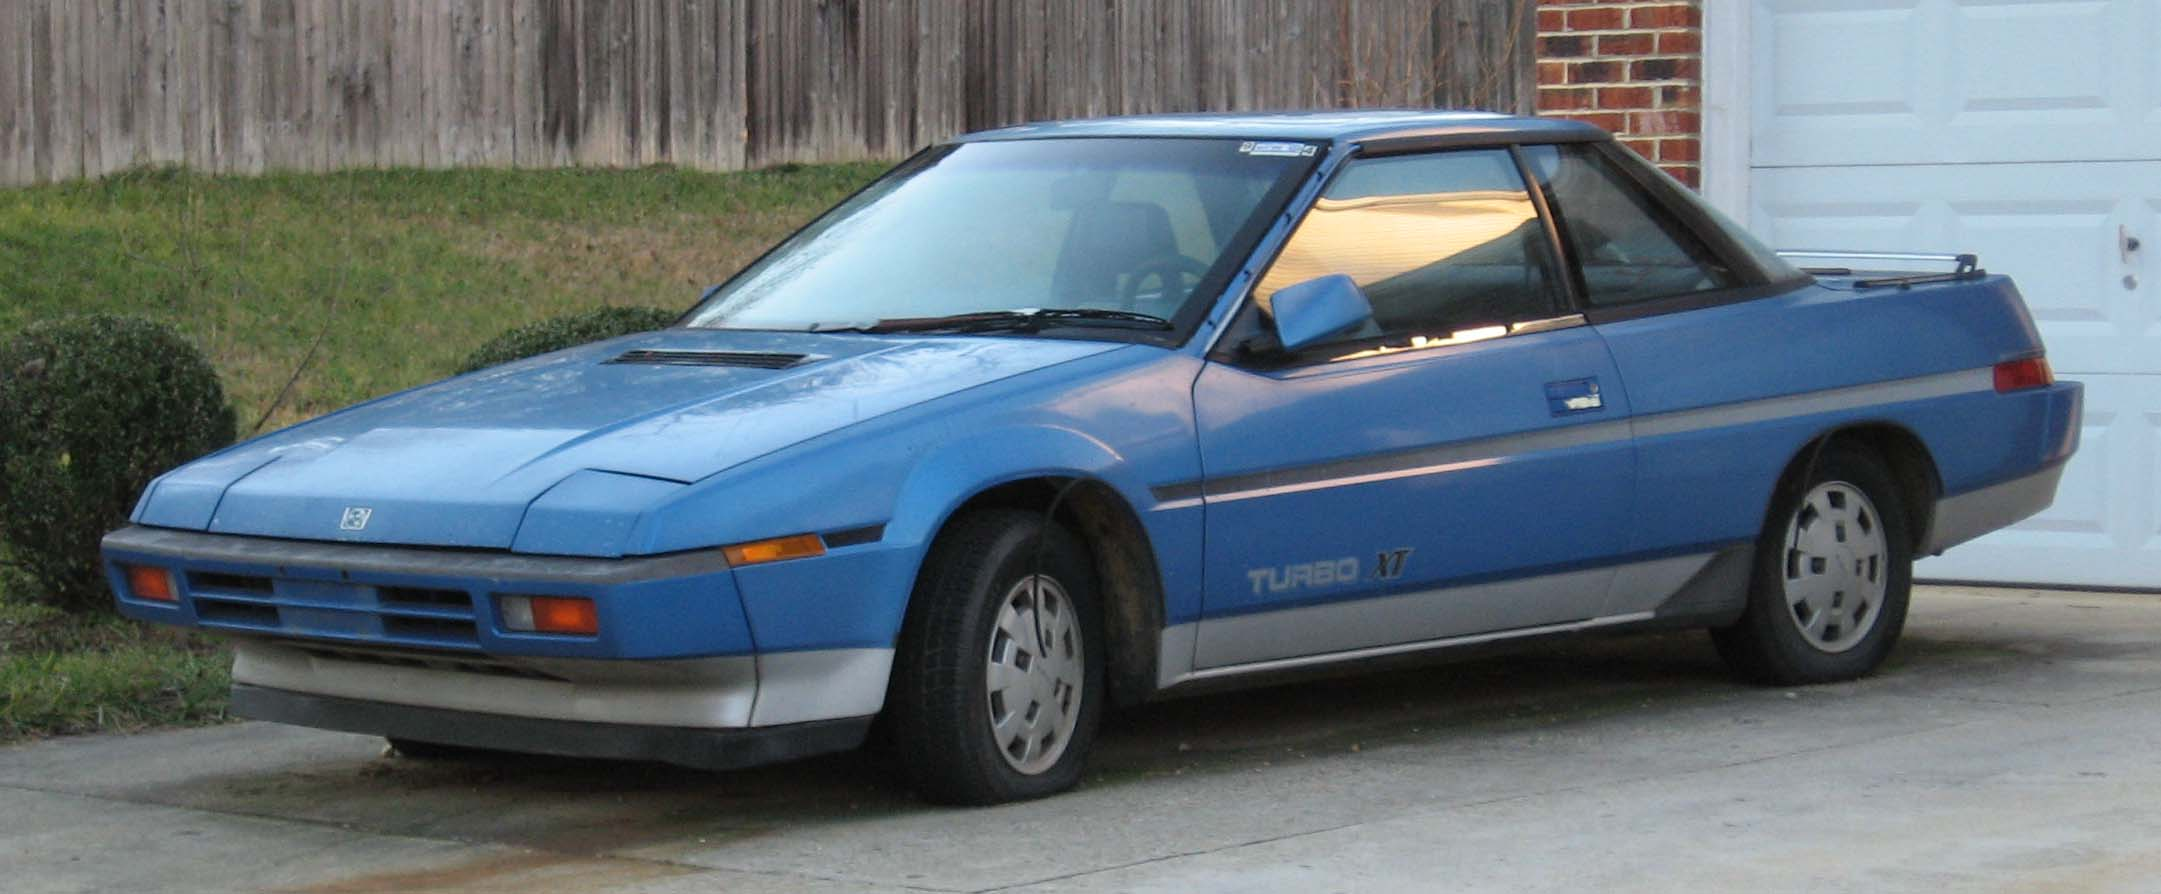 Subura Cars That Were Leased For Sale